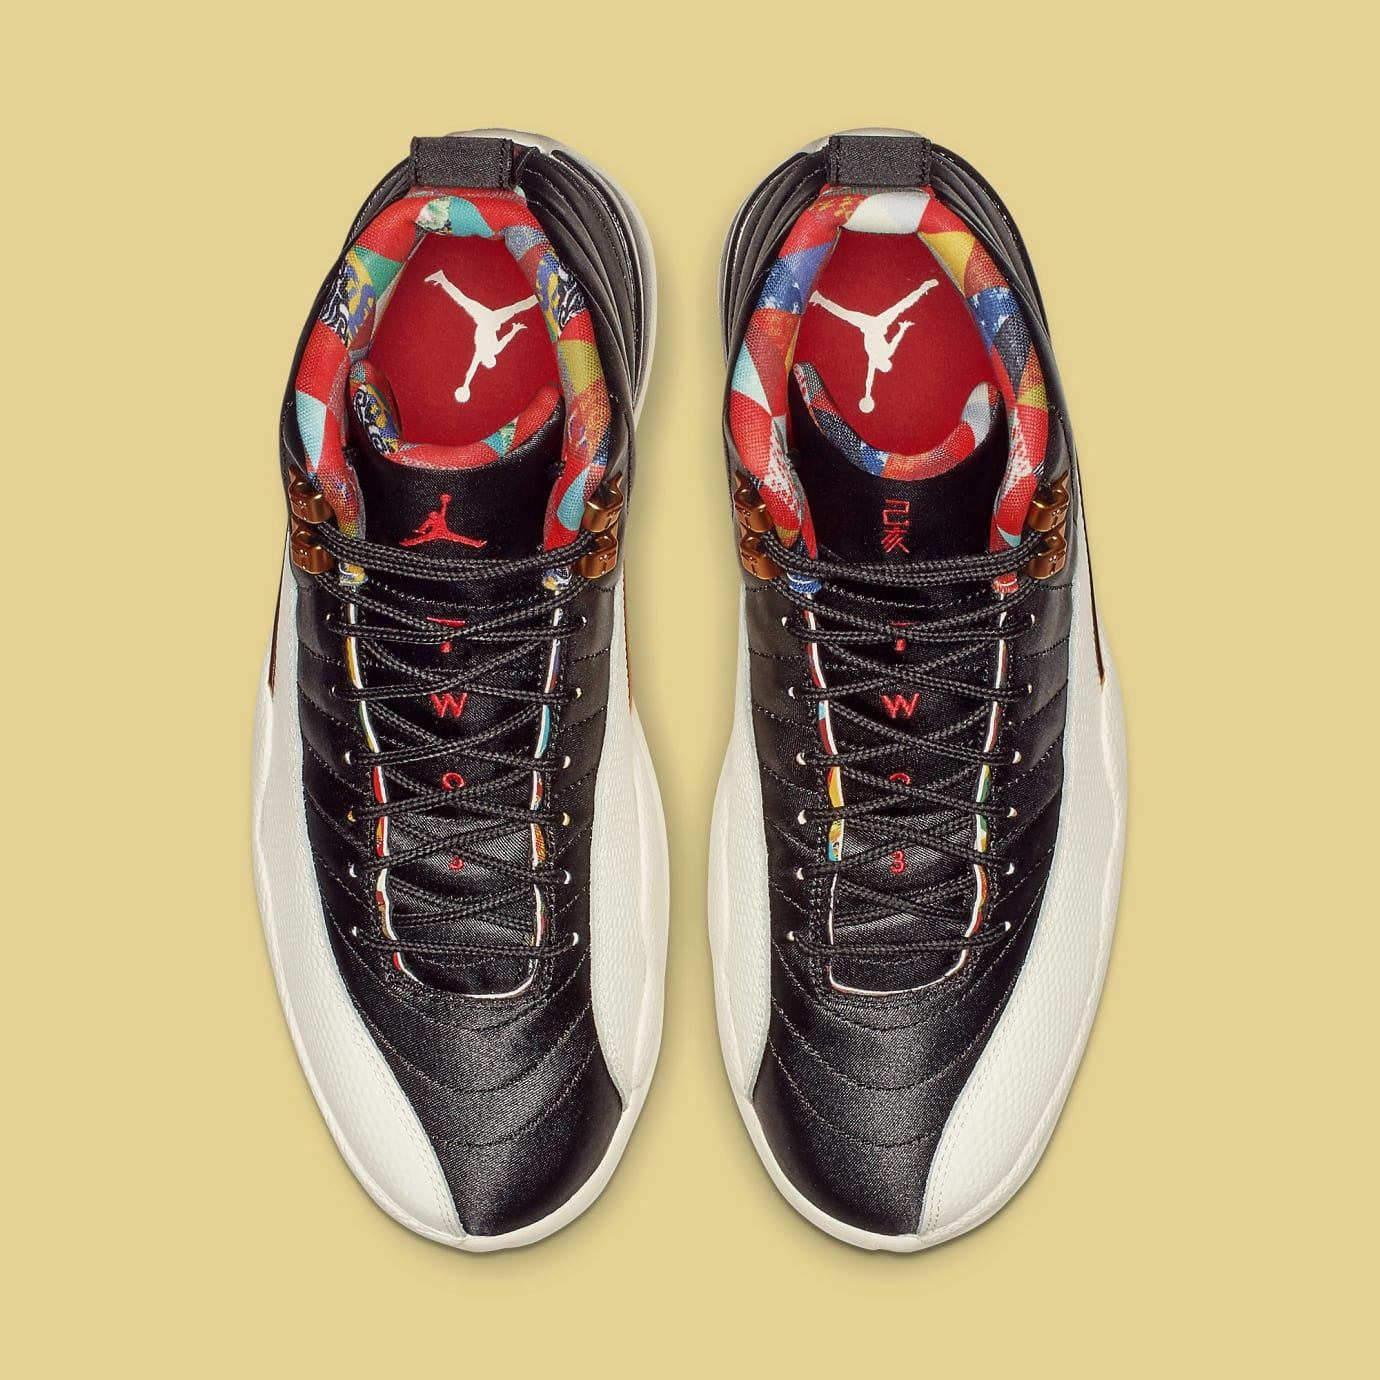 20f113eb36ab60 Image via Nike Air Jordan 12